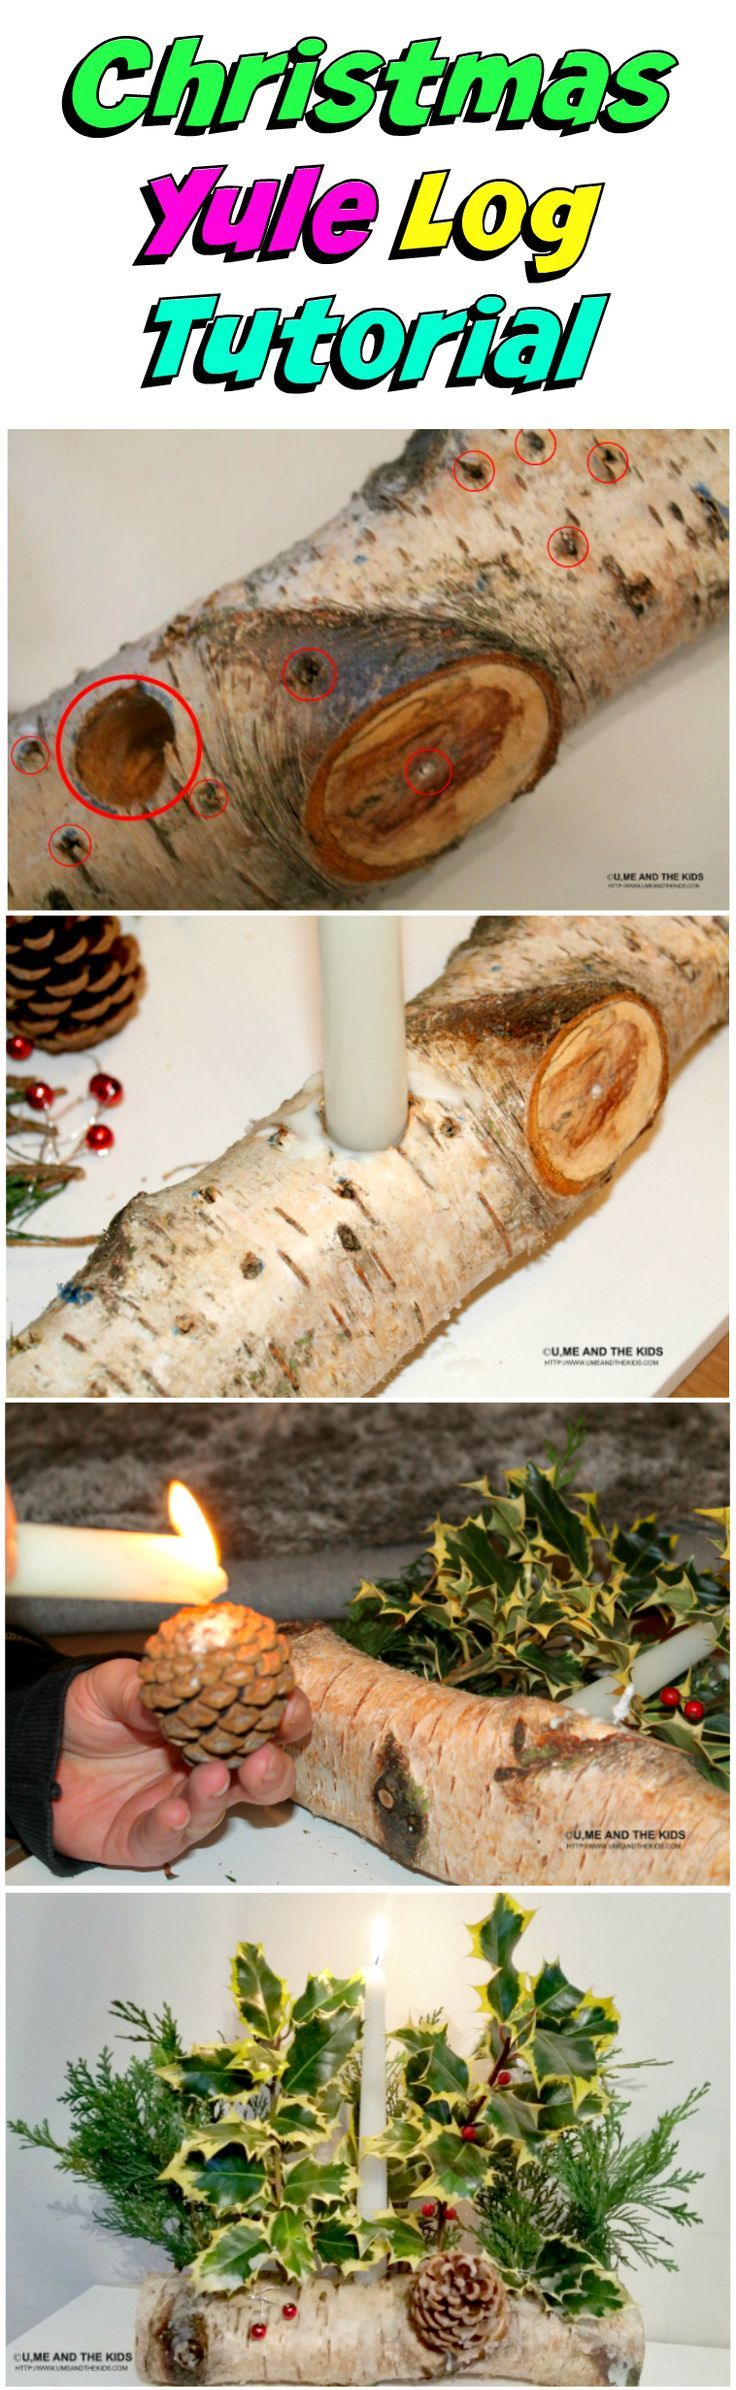 Easy Christmas Crafts for Kids - Make a Natural Yule Log